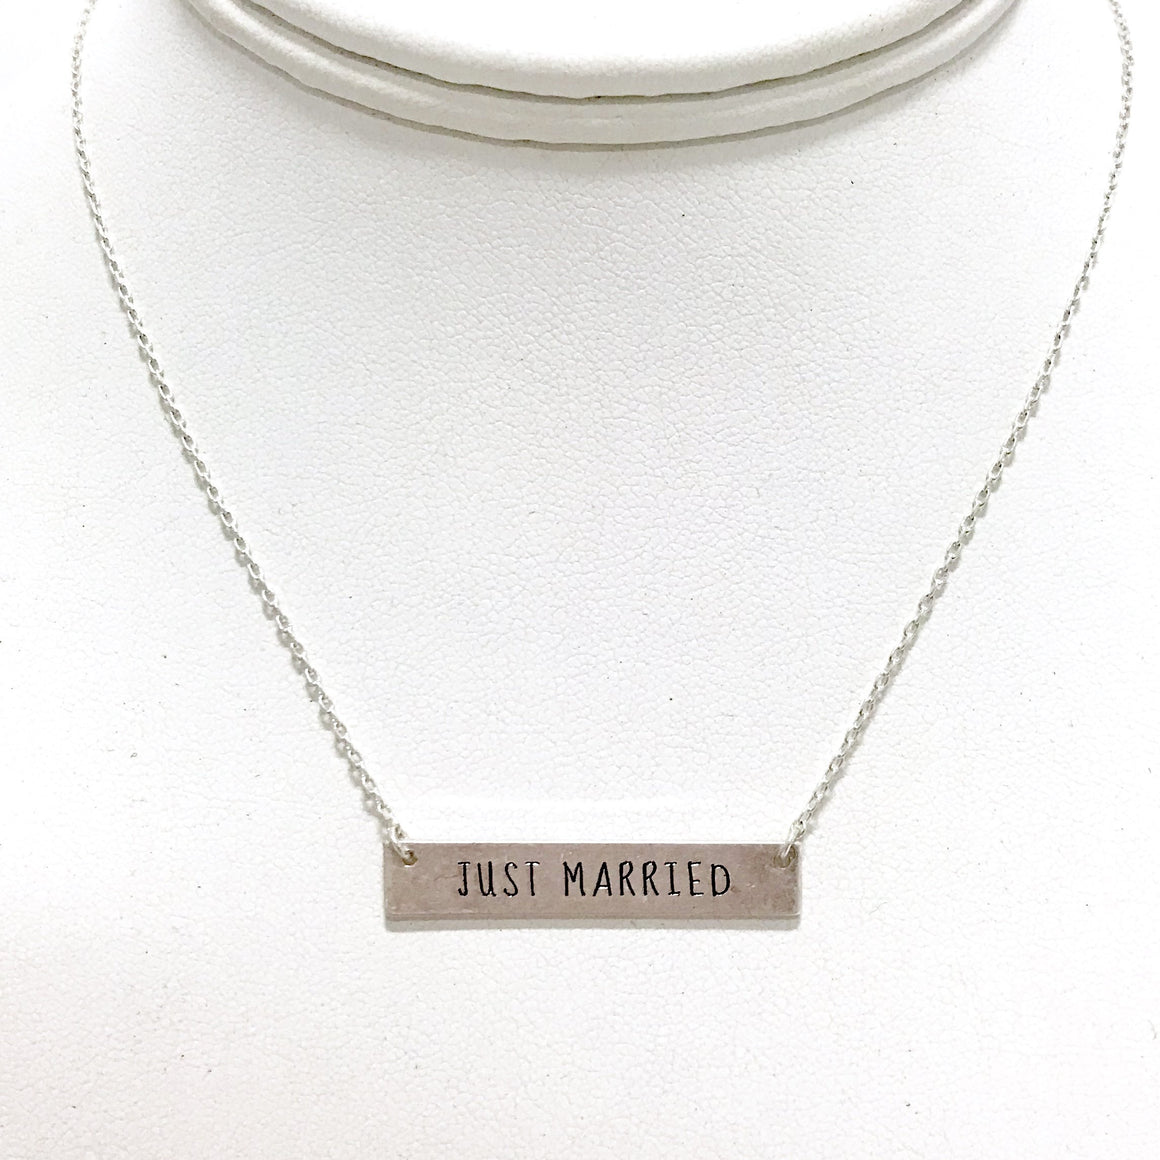 Just Married Silver Necklace